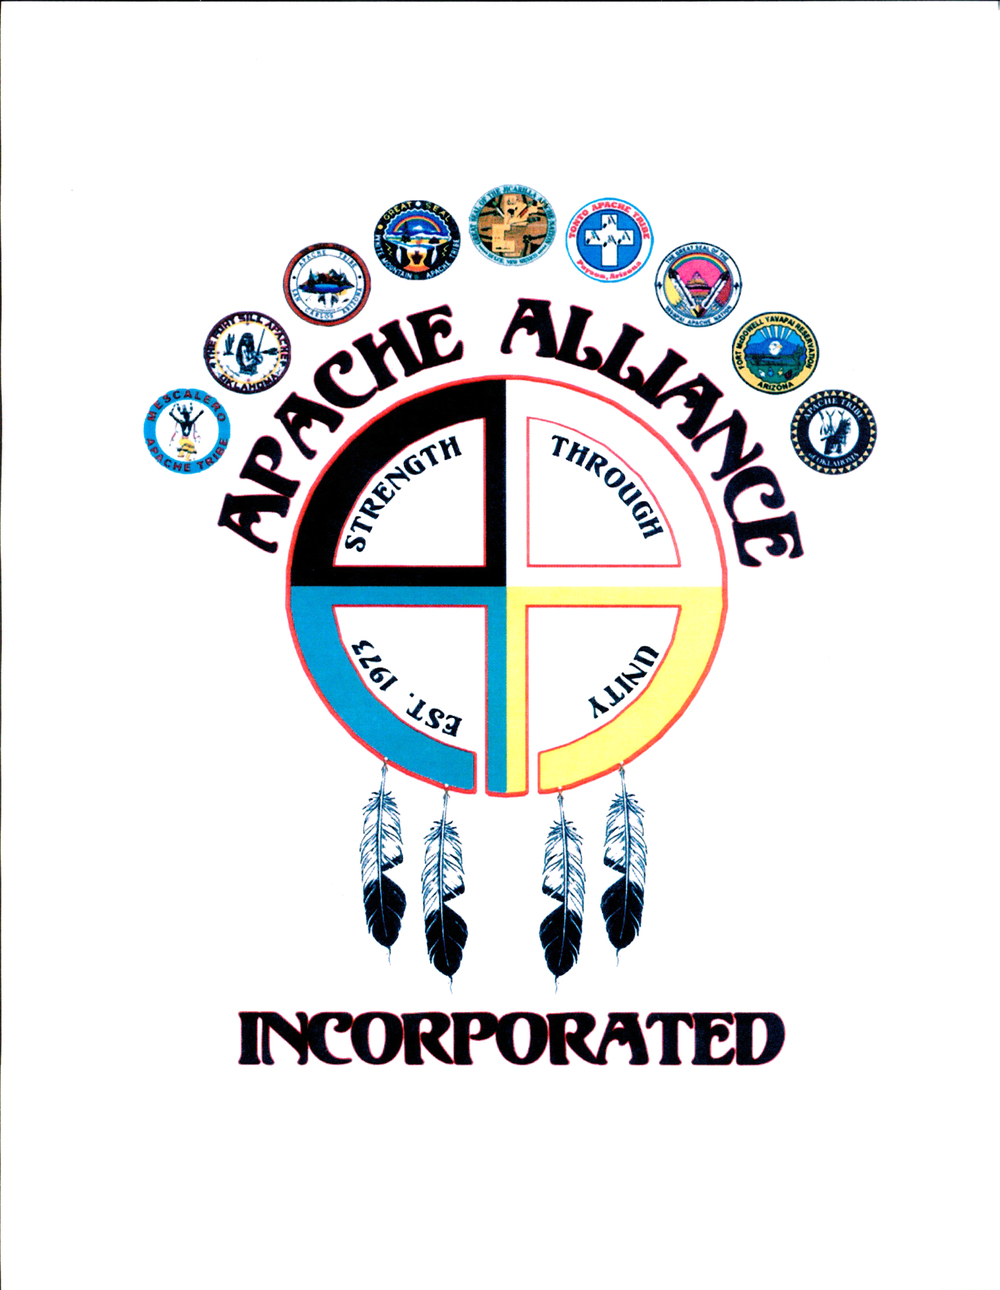 "The Apache Alliance Seal was created and designed by Jicarilla Apache member, Leon K. Reval. The design, in its simplicity, consists of two capital ""A's"" tied together to represent a medicine wheel.  The five colors used, turquoise, black, yellow, white and red, represent most of the Apache Tribes.  The four feathers, pay homage to the four founding tribes of the Apache Alliance in 1973, Jicarilla, Mescalero, San Carlos and White Mountain.  The slogan ""Strength through Unity Est. 1973"" was thought of by Jicarilla Apache member and Apache Alliance Secretary, Stanley Montoya, and purposely put inside the ""A's"" to signify the heart of the Apache Alliance's creation.  All nine of the Apache tribes Great Seals hover above the Apache Alliance logo, to signify the organization's power to hold up and support all the Apache Tribes. A tenth seal may be added with the addition of the Lipan Apache Tribe of Texas in 2014.  The Apache Alliance Board, officially adopted this seal on Friday, May 10, 2013, during the Apache Alliance V Summit, hosted at the Sunrise Ski resort located on the beautiful White Mountain Apache Reservation."